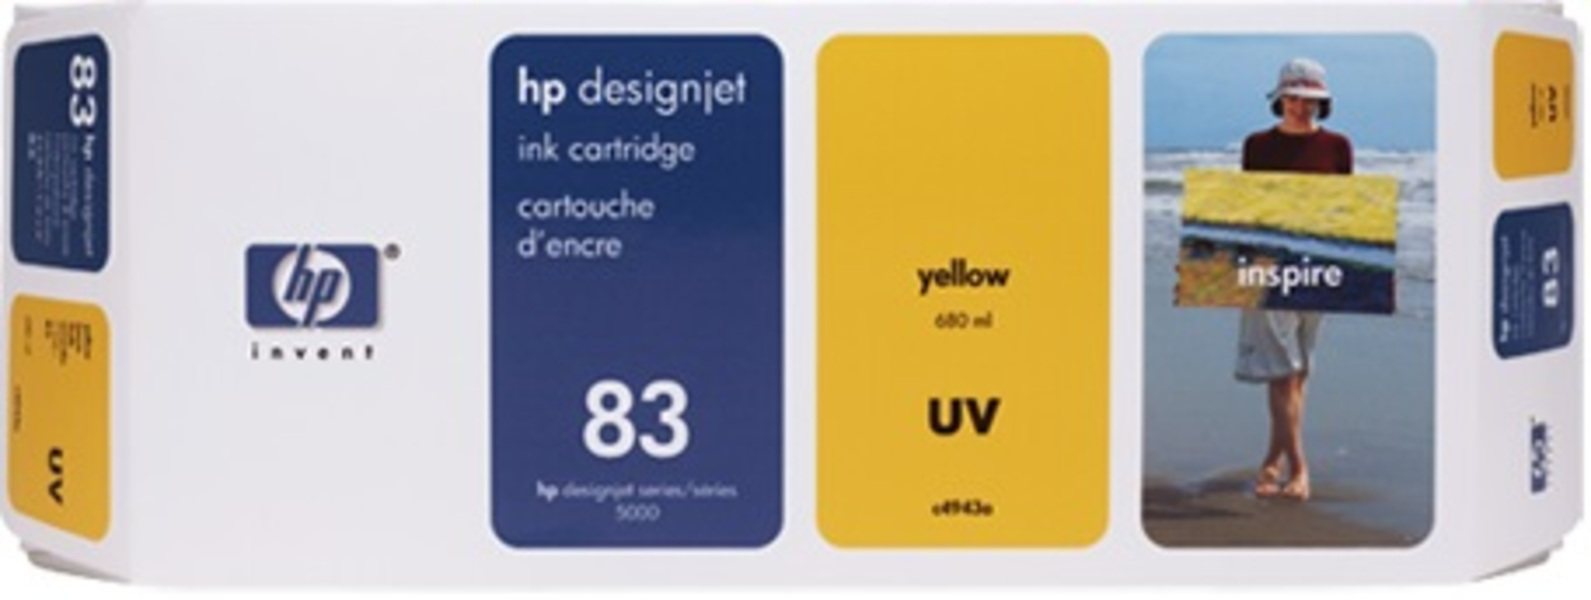 HP Ink Cartridge 83, yellow C4943A